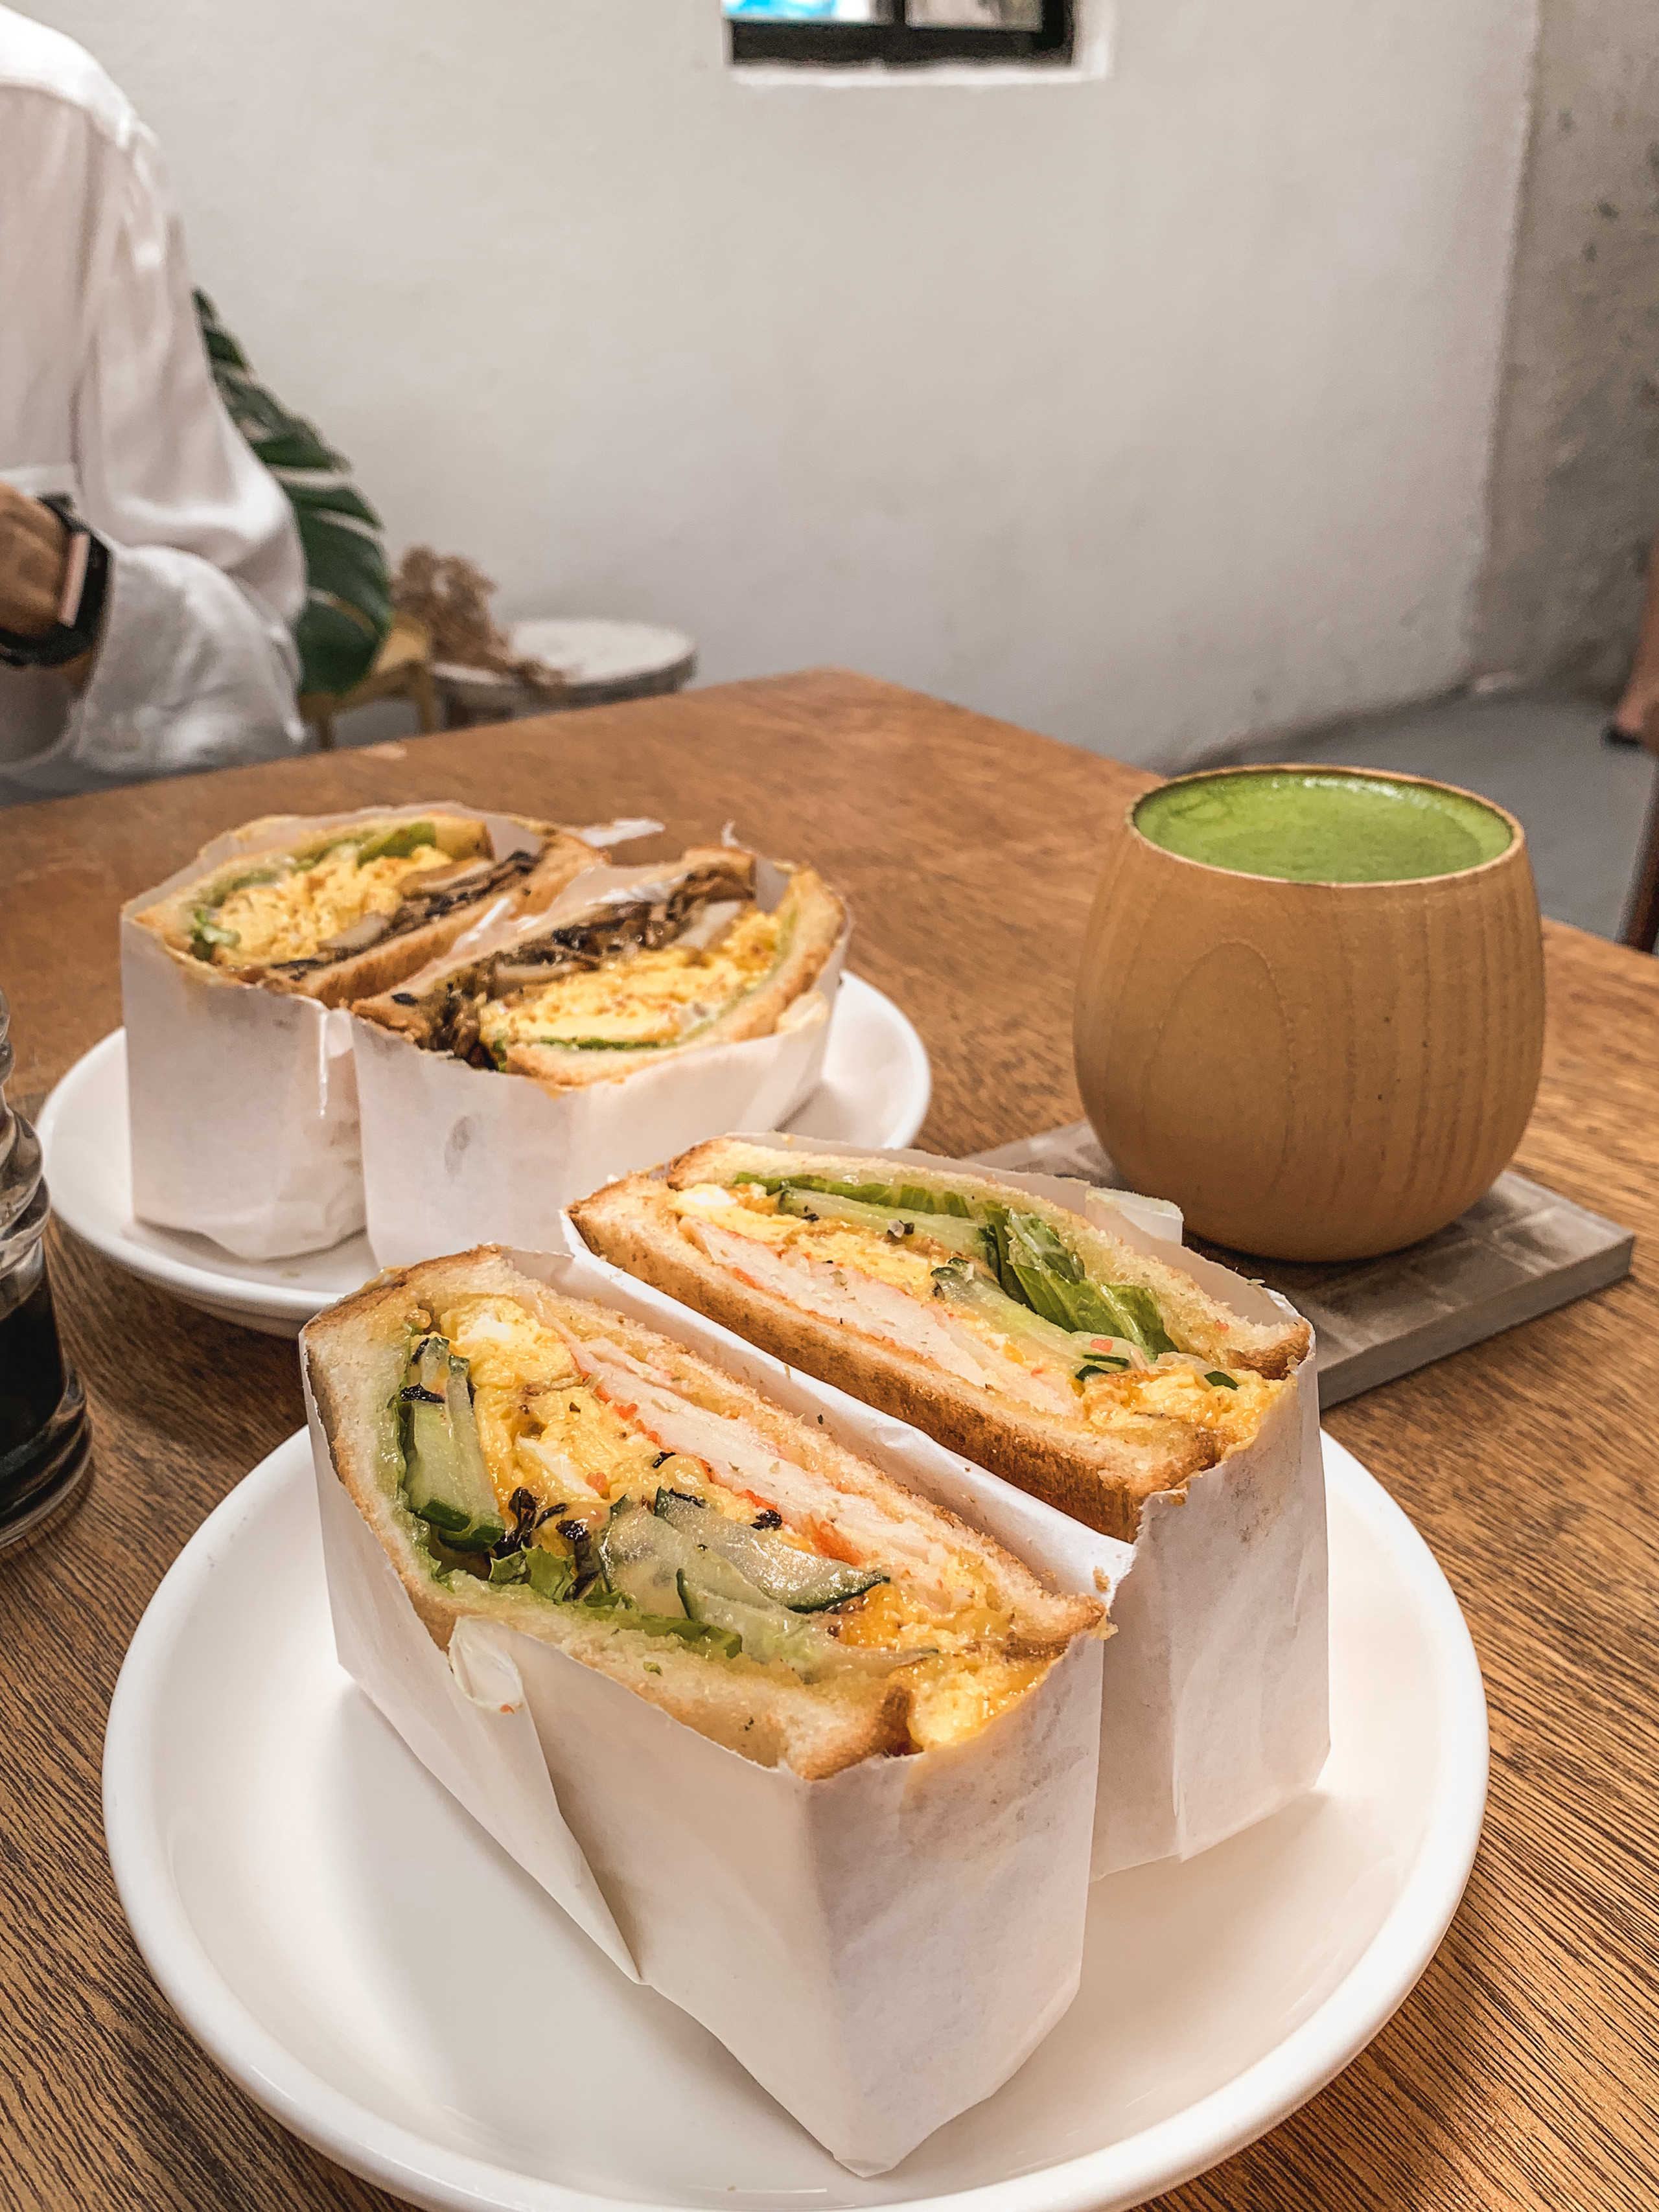 Le楽 Cafe Mentaiko Crab Sandwich and matcha latte, food photography by RollingBear Travels.